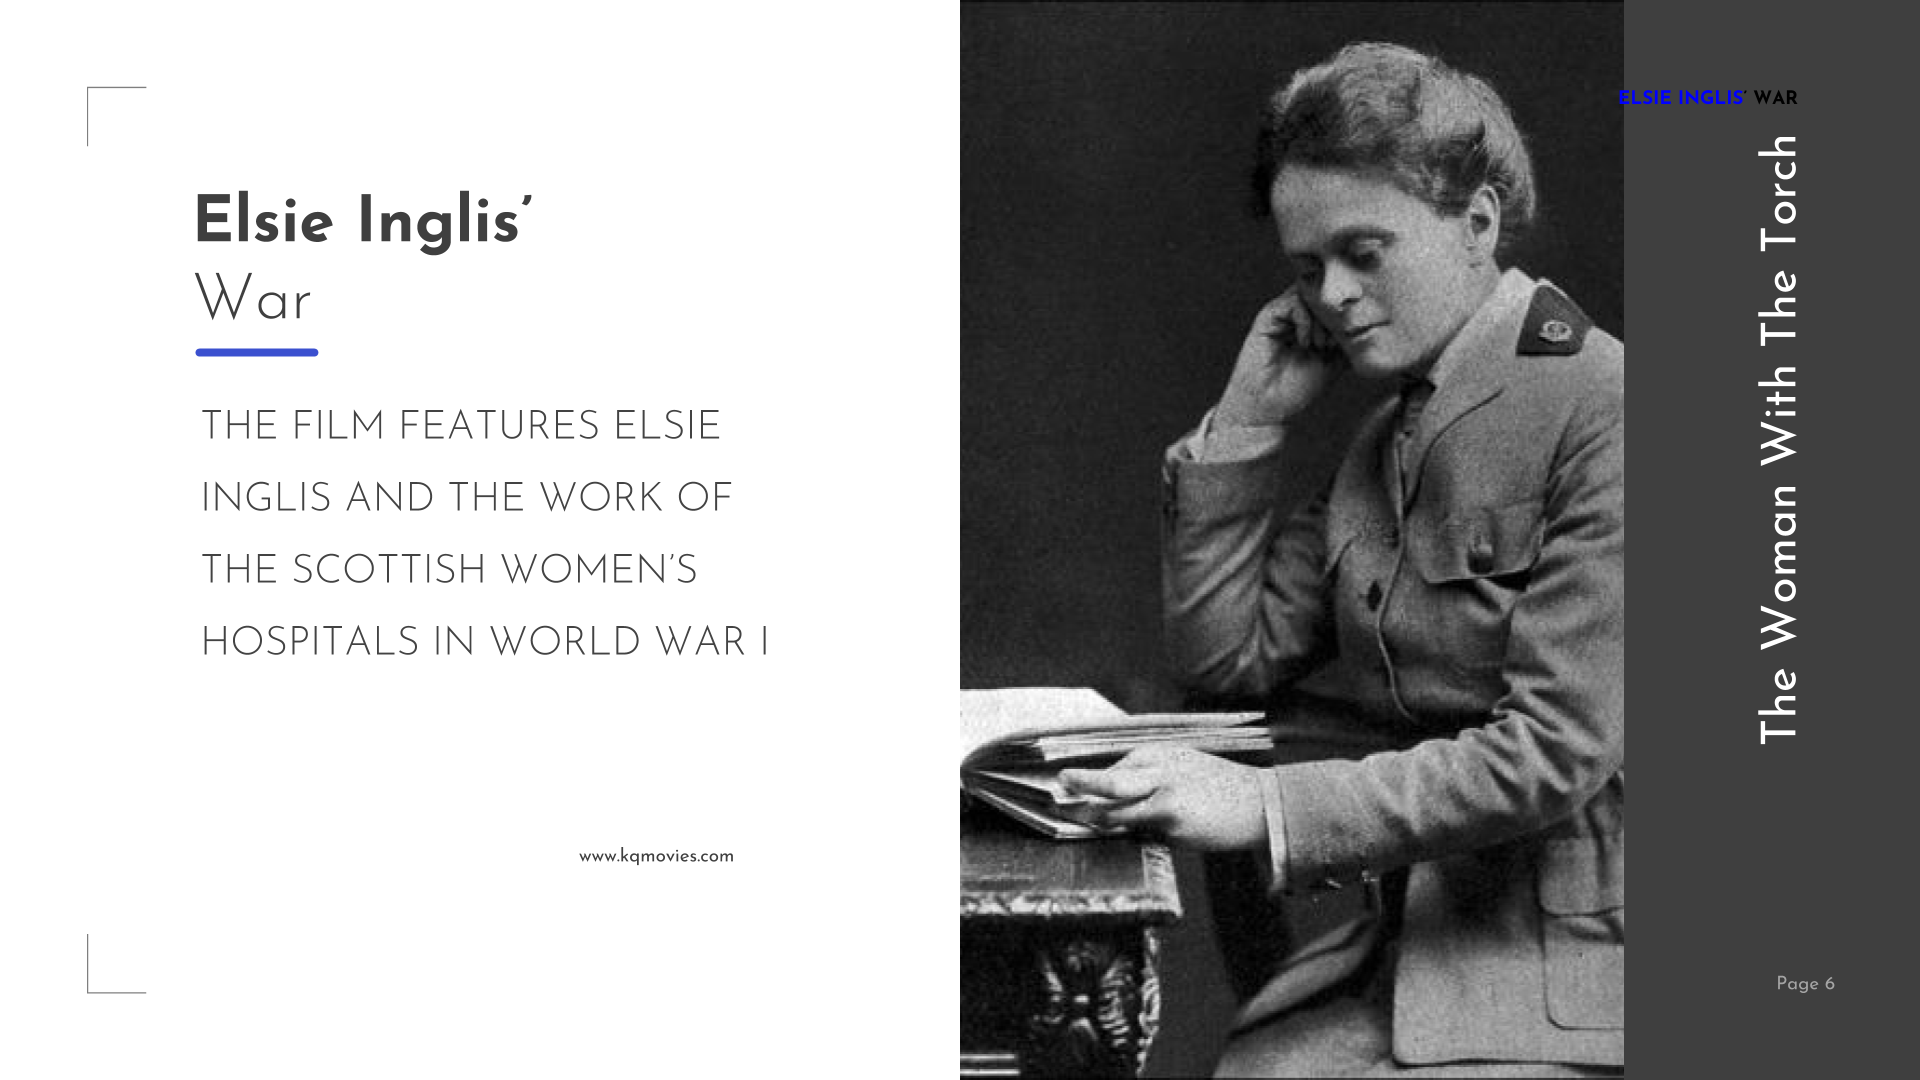 The Woman with the Torch – Elsie Inglis's war